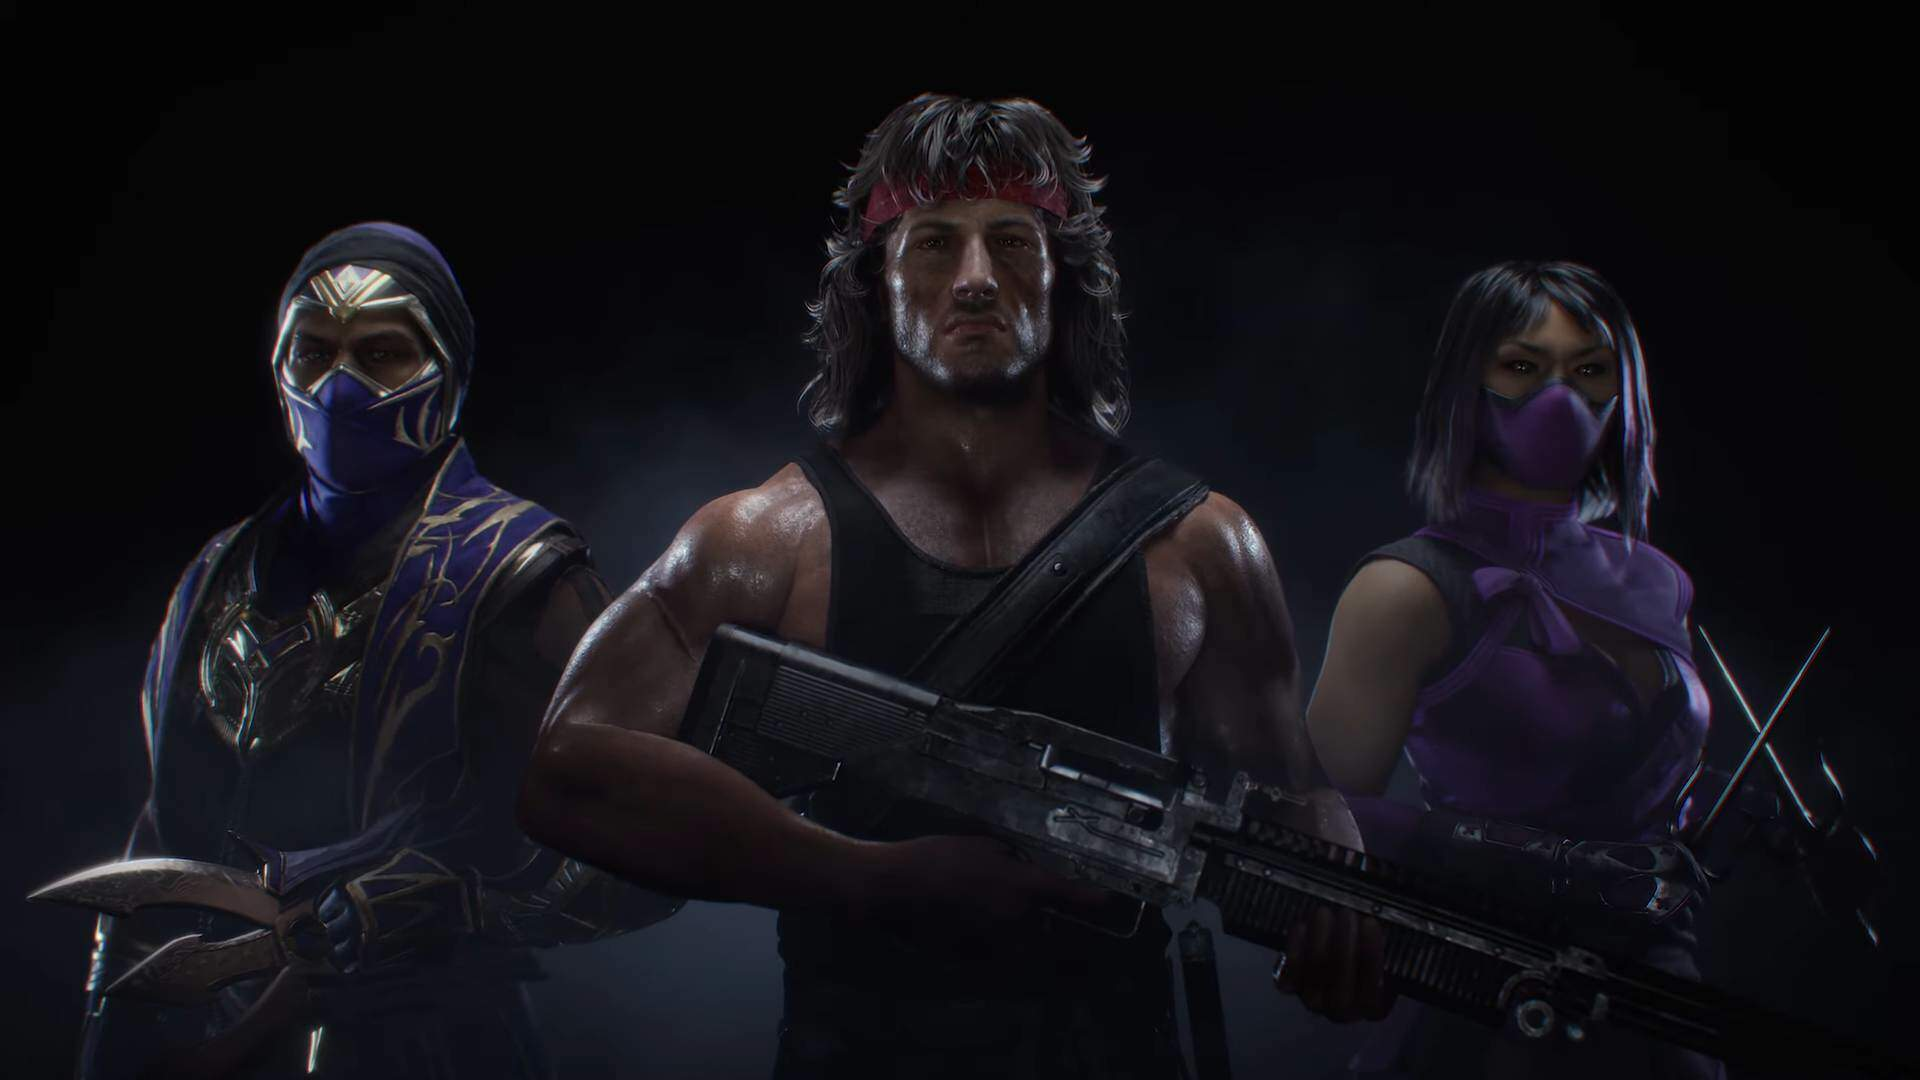 Mortal Kombat 11 Is Headed to Next-Gen Consoles, With Rambo in Tow